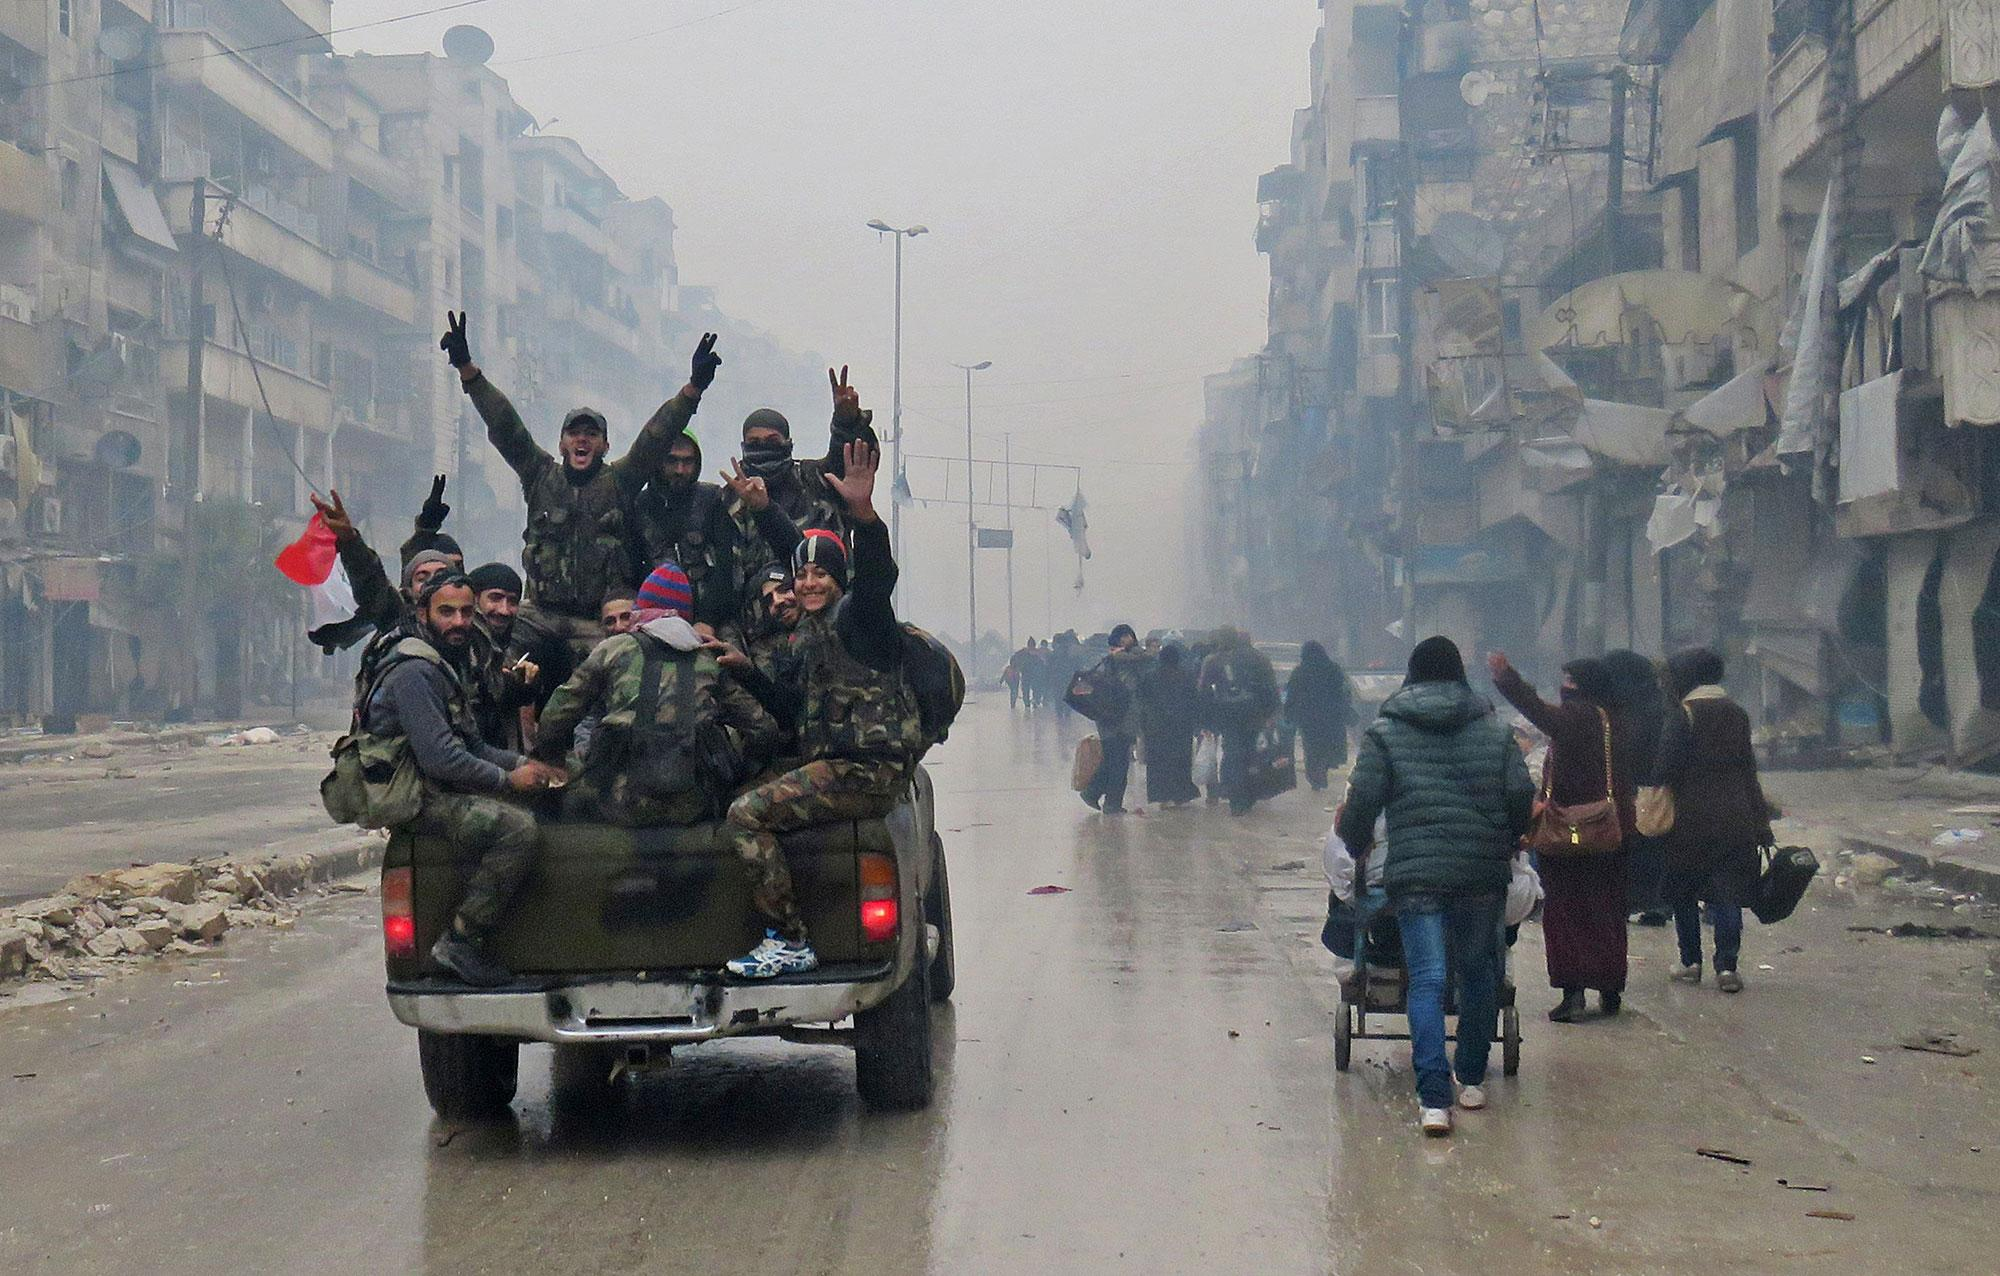 <p>Syrian pro-regime fighters, gesture as they drive past residents fleeing violence in the restive Bustan al-Qasr neighbourhood, in Aleppo's Fardos neighbourhood on December 13, 2016, after regime troops retook the area from rebel fighters. Syrian rebels withdrew from six more neighbourhoods in their one-time bastion of east Aleppo in the face of advancing government troops, the Syrian Observatory for Human Rights said. (Stringer/AFP/Getty Images) </p>